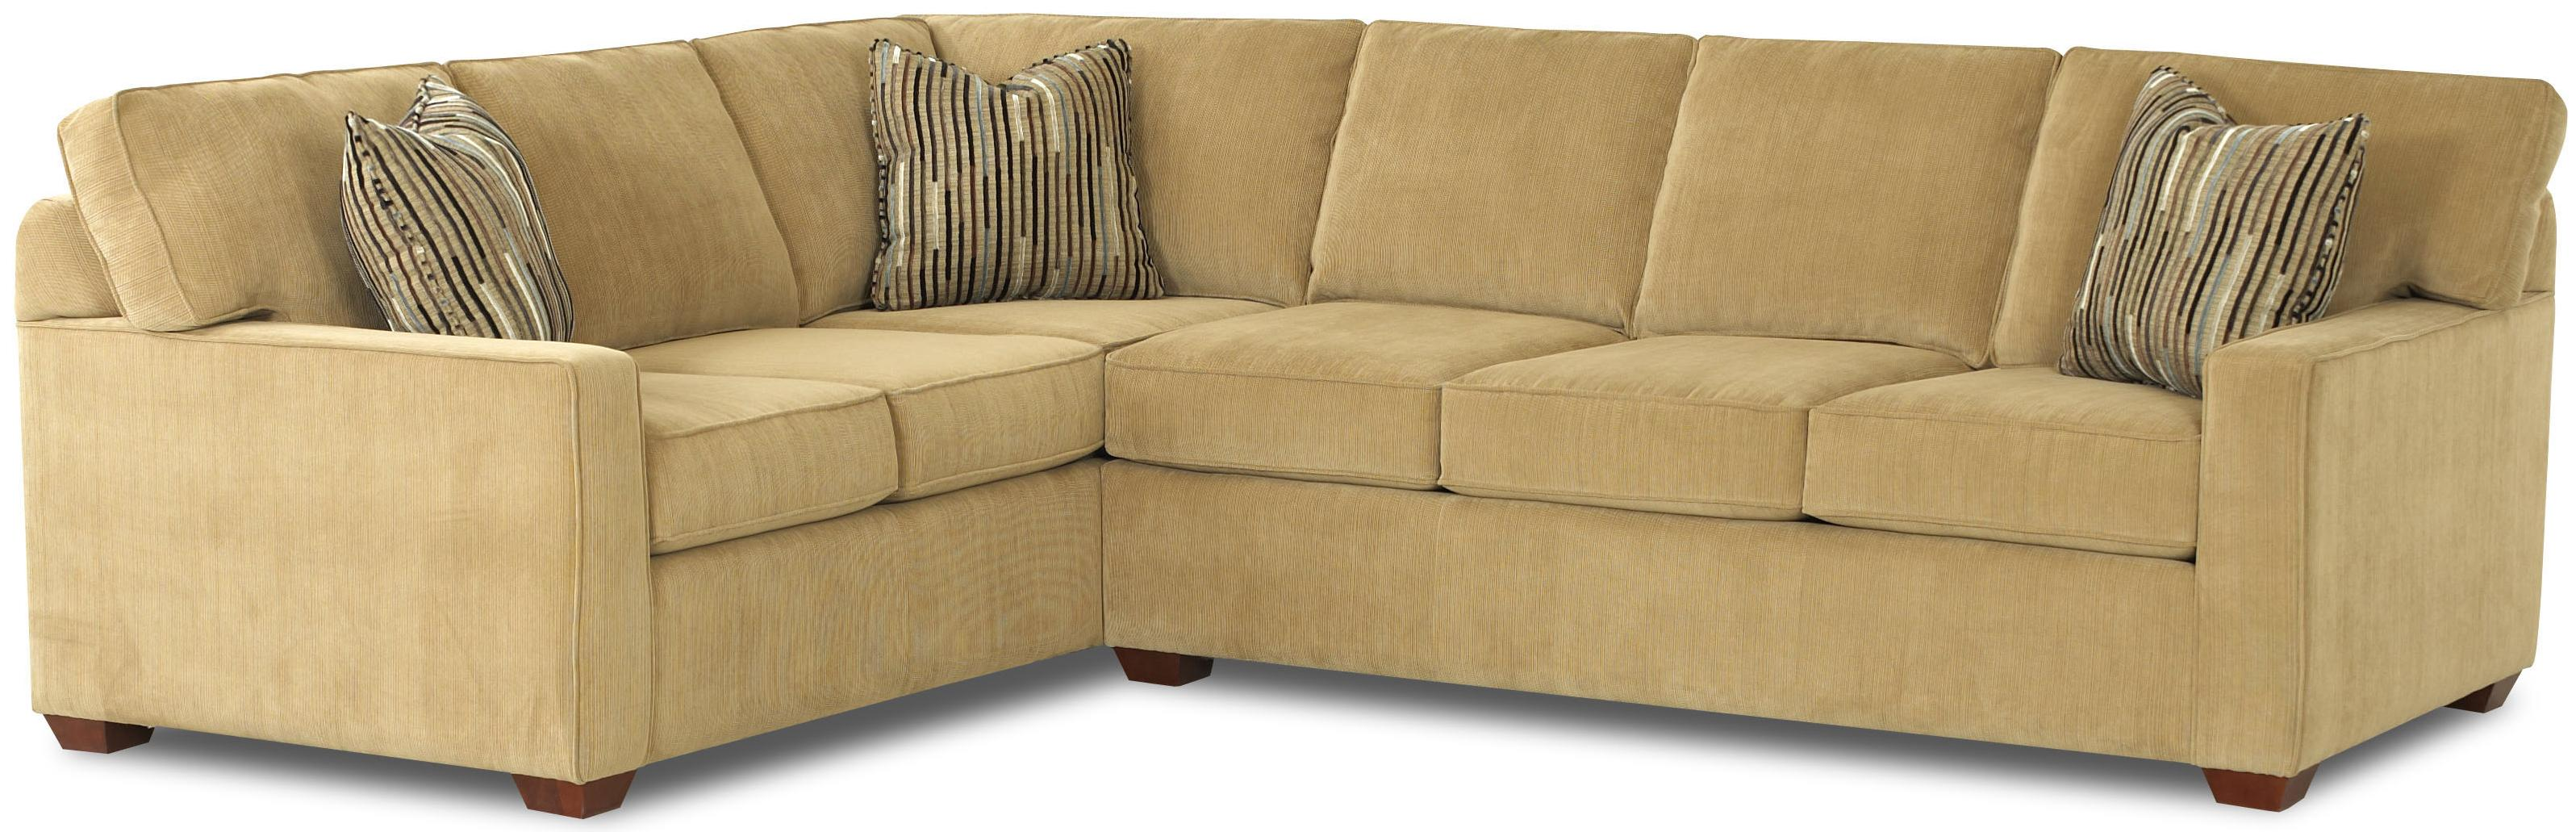 sofa deals nj pier 1 imports sofas klaussner selection l shaped contemporary sectional